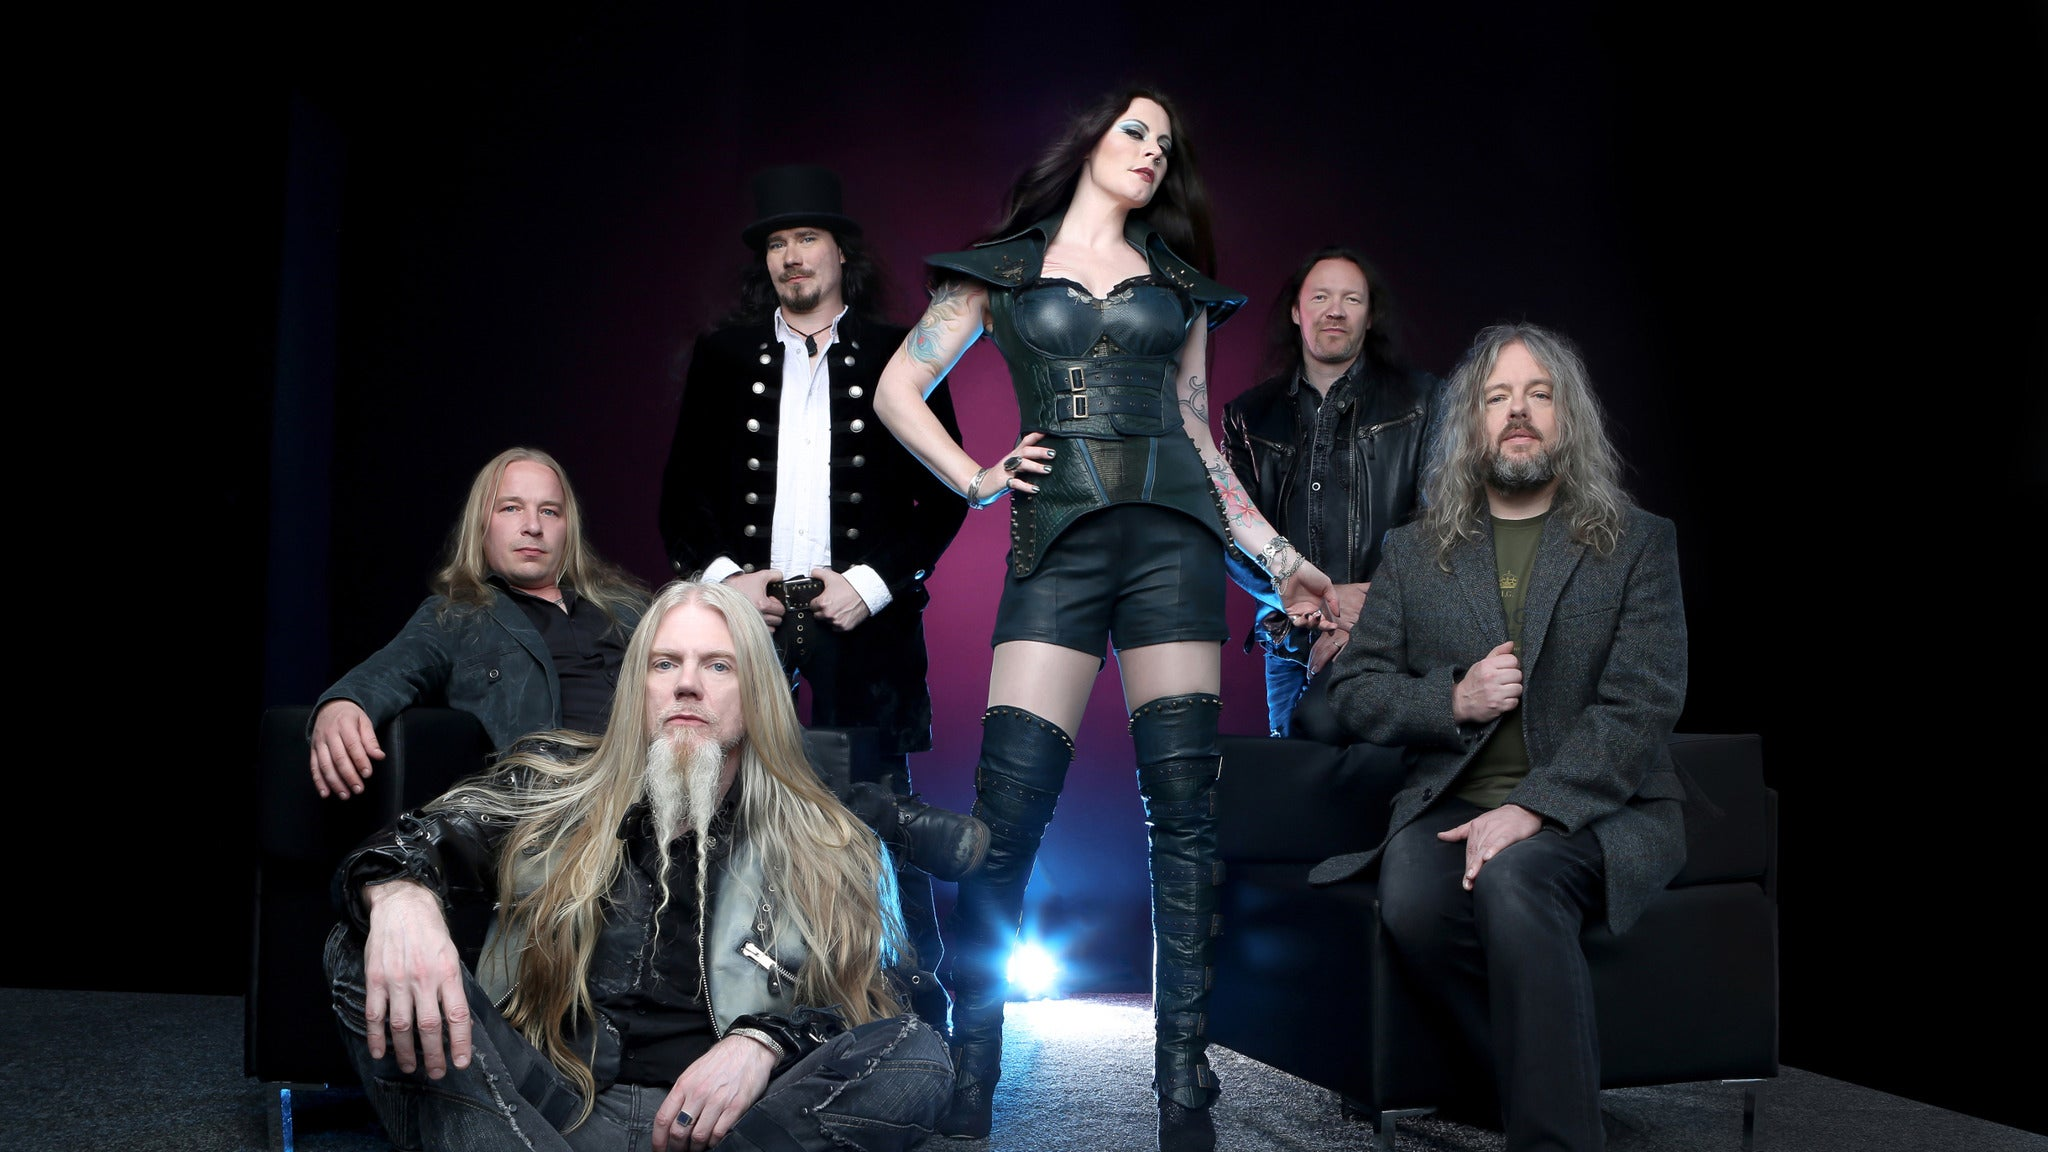 Nightwish at Saenger Theatre Mobile - Mobile, AL 36602